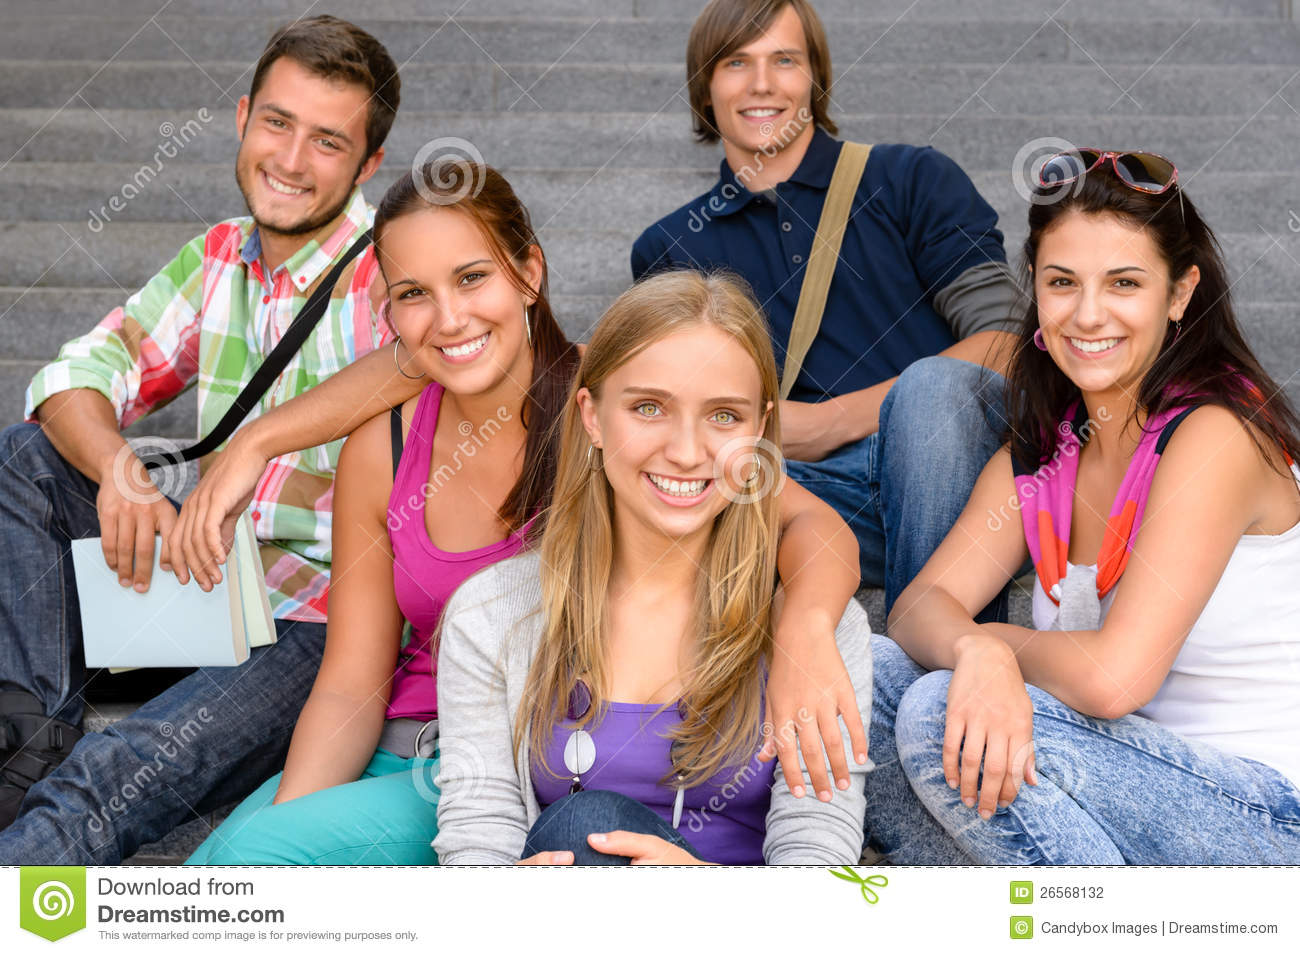 college students online dating Online dating services geared towards college life are great for students.